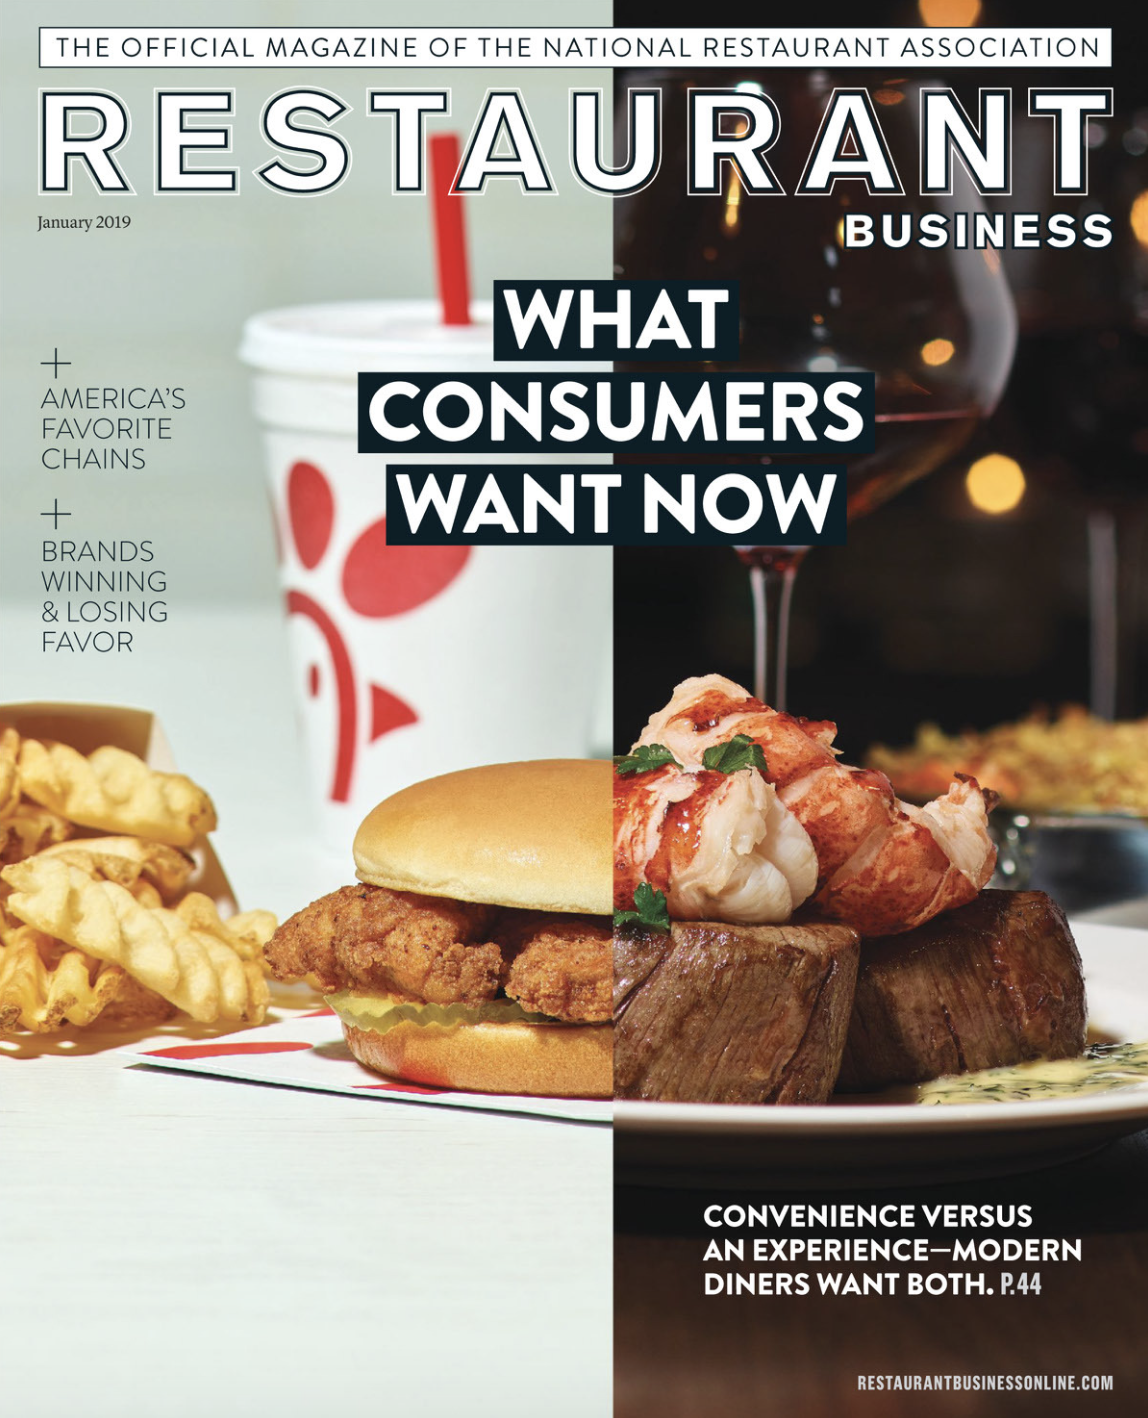 Restaurant Business Magazine January 2019 Issue